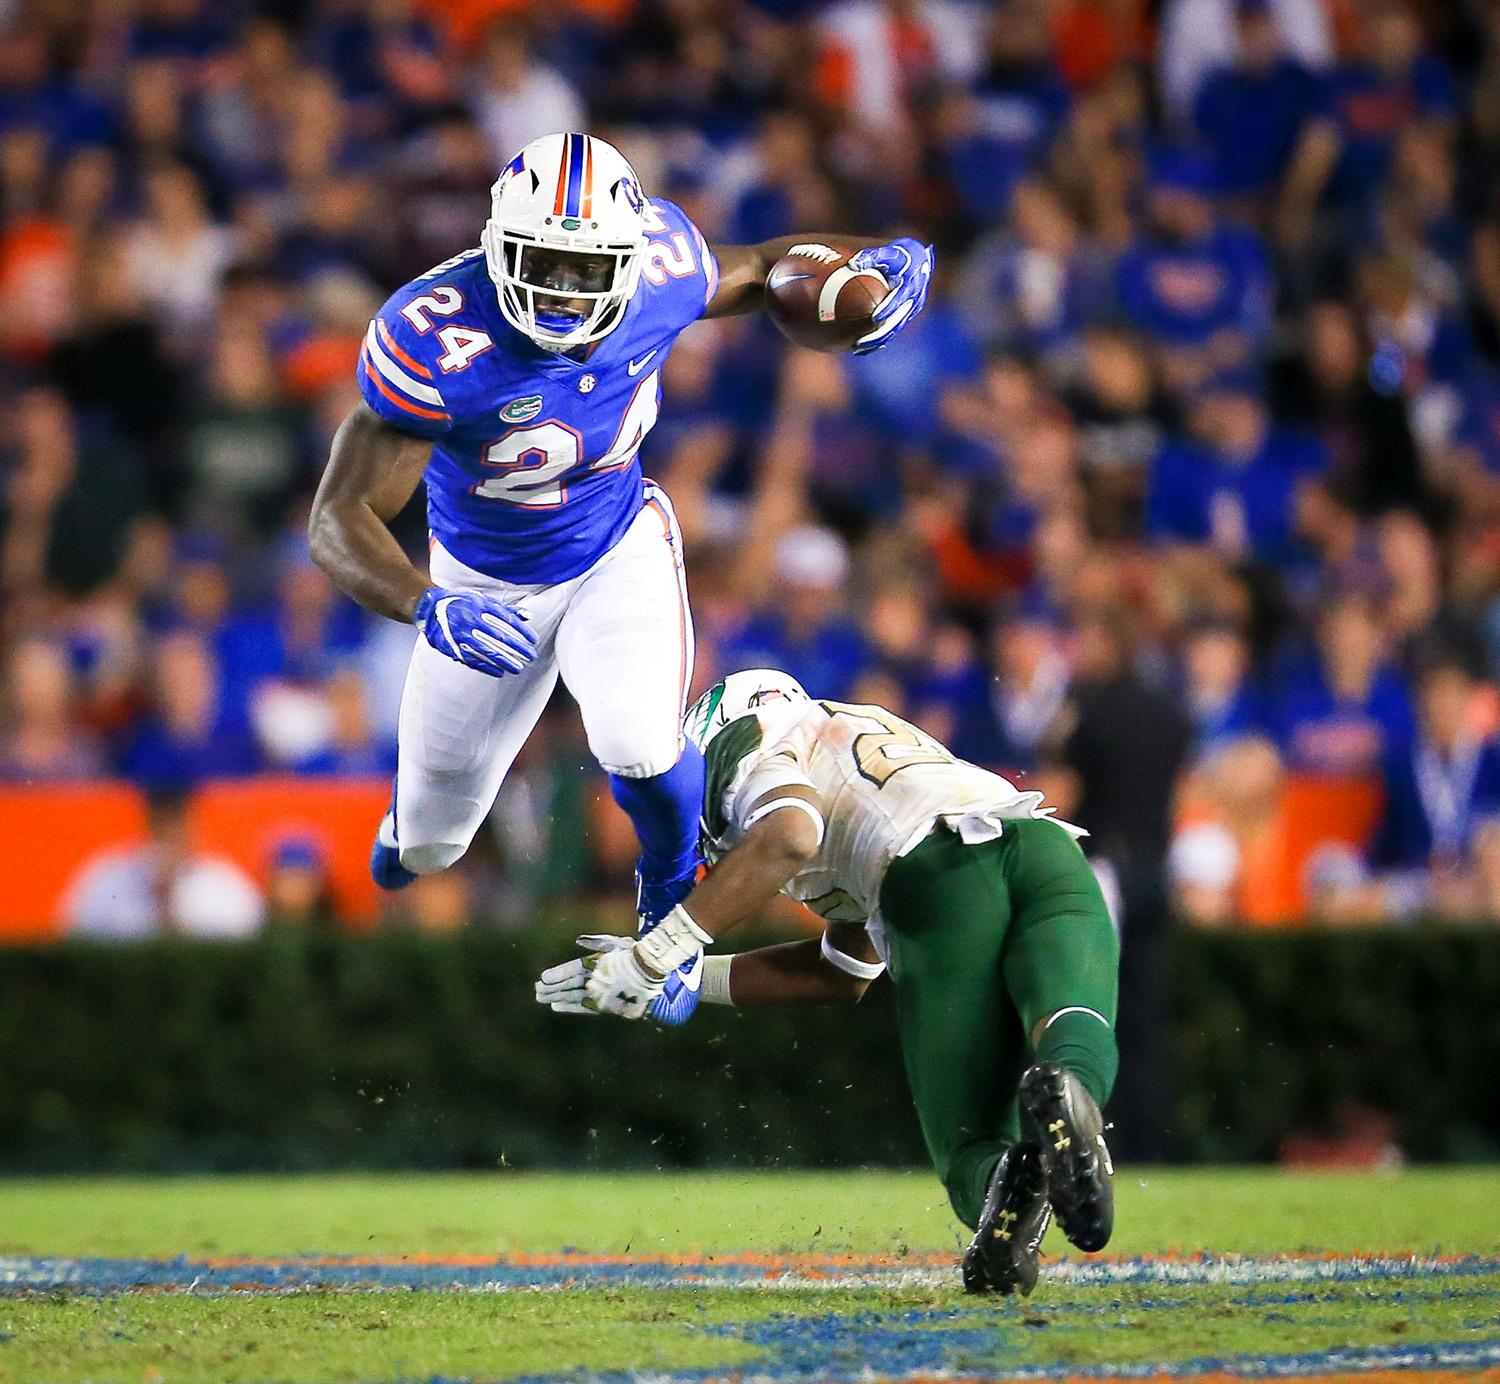 UAB Blazers at Florida Gators football at Ben Hill Griffin Stadium on Saturday, Nov. 19, 2017 in Gainesville, Fla. Florida defeated UAB 36-7. (Photo by Matt Stamey)